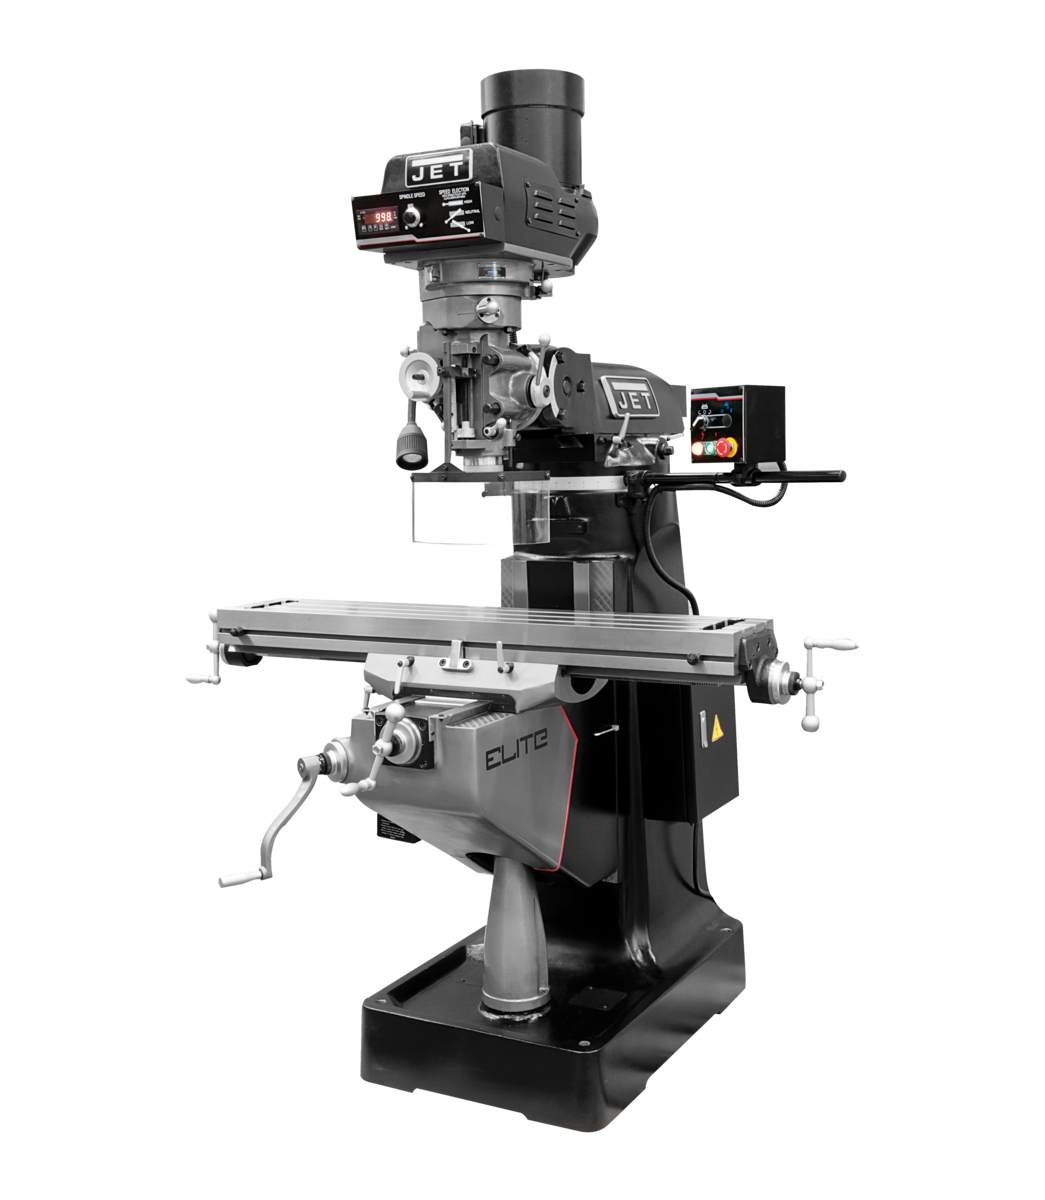 EVS-949 Mill with 3-Axis ACU-RITE 303 (Quill) DRO and X-Axis JET Powerfeed and USA Made Air Draw Bar